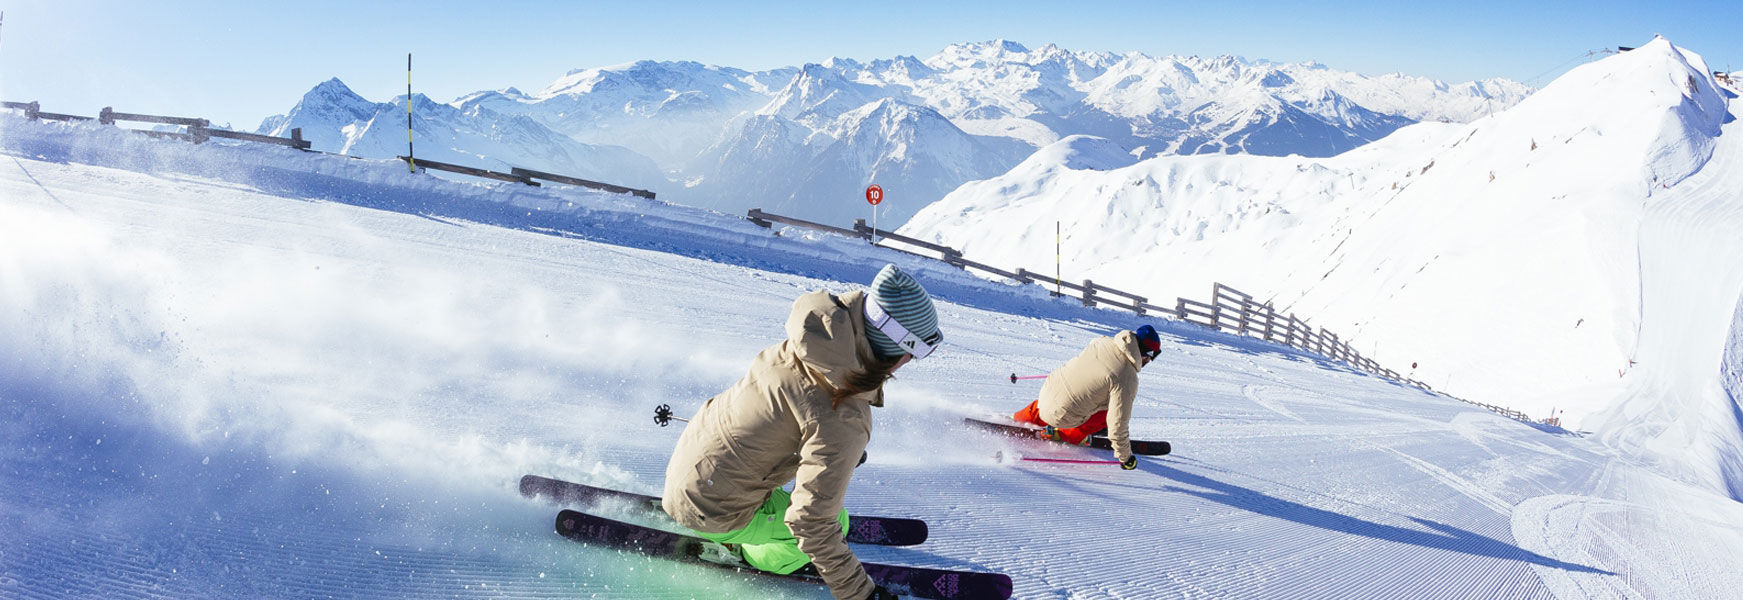 Ski rental Intersport La Plagne Aime 2000